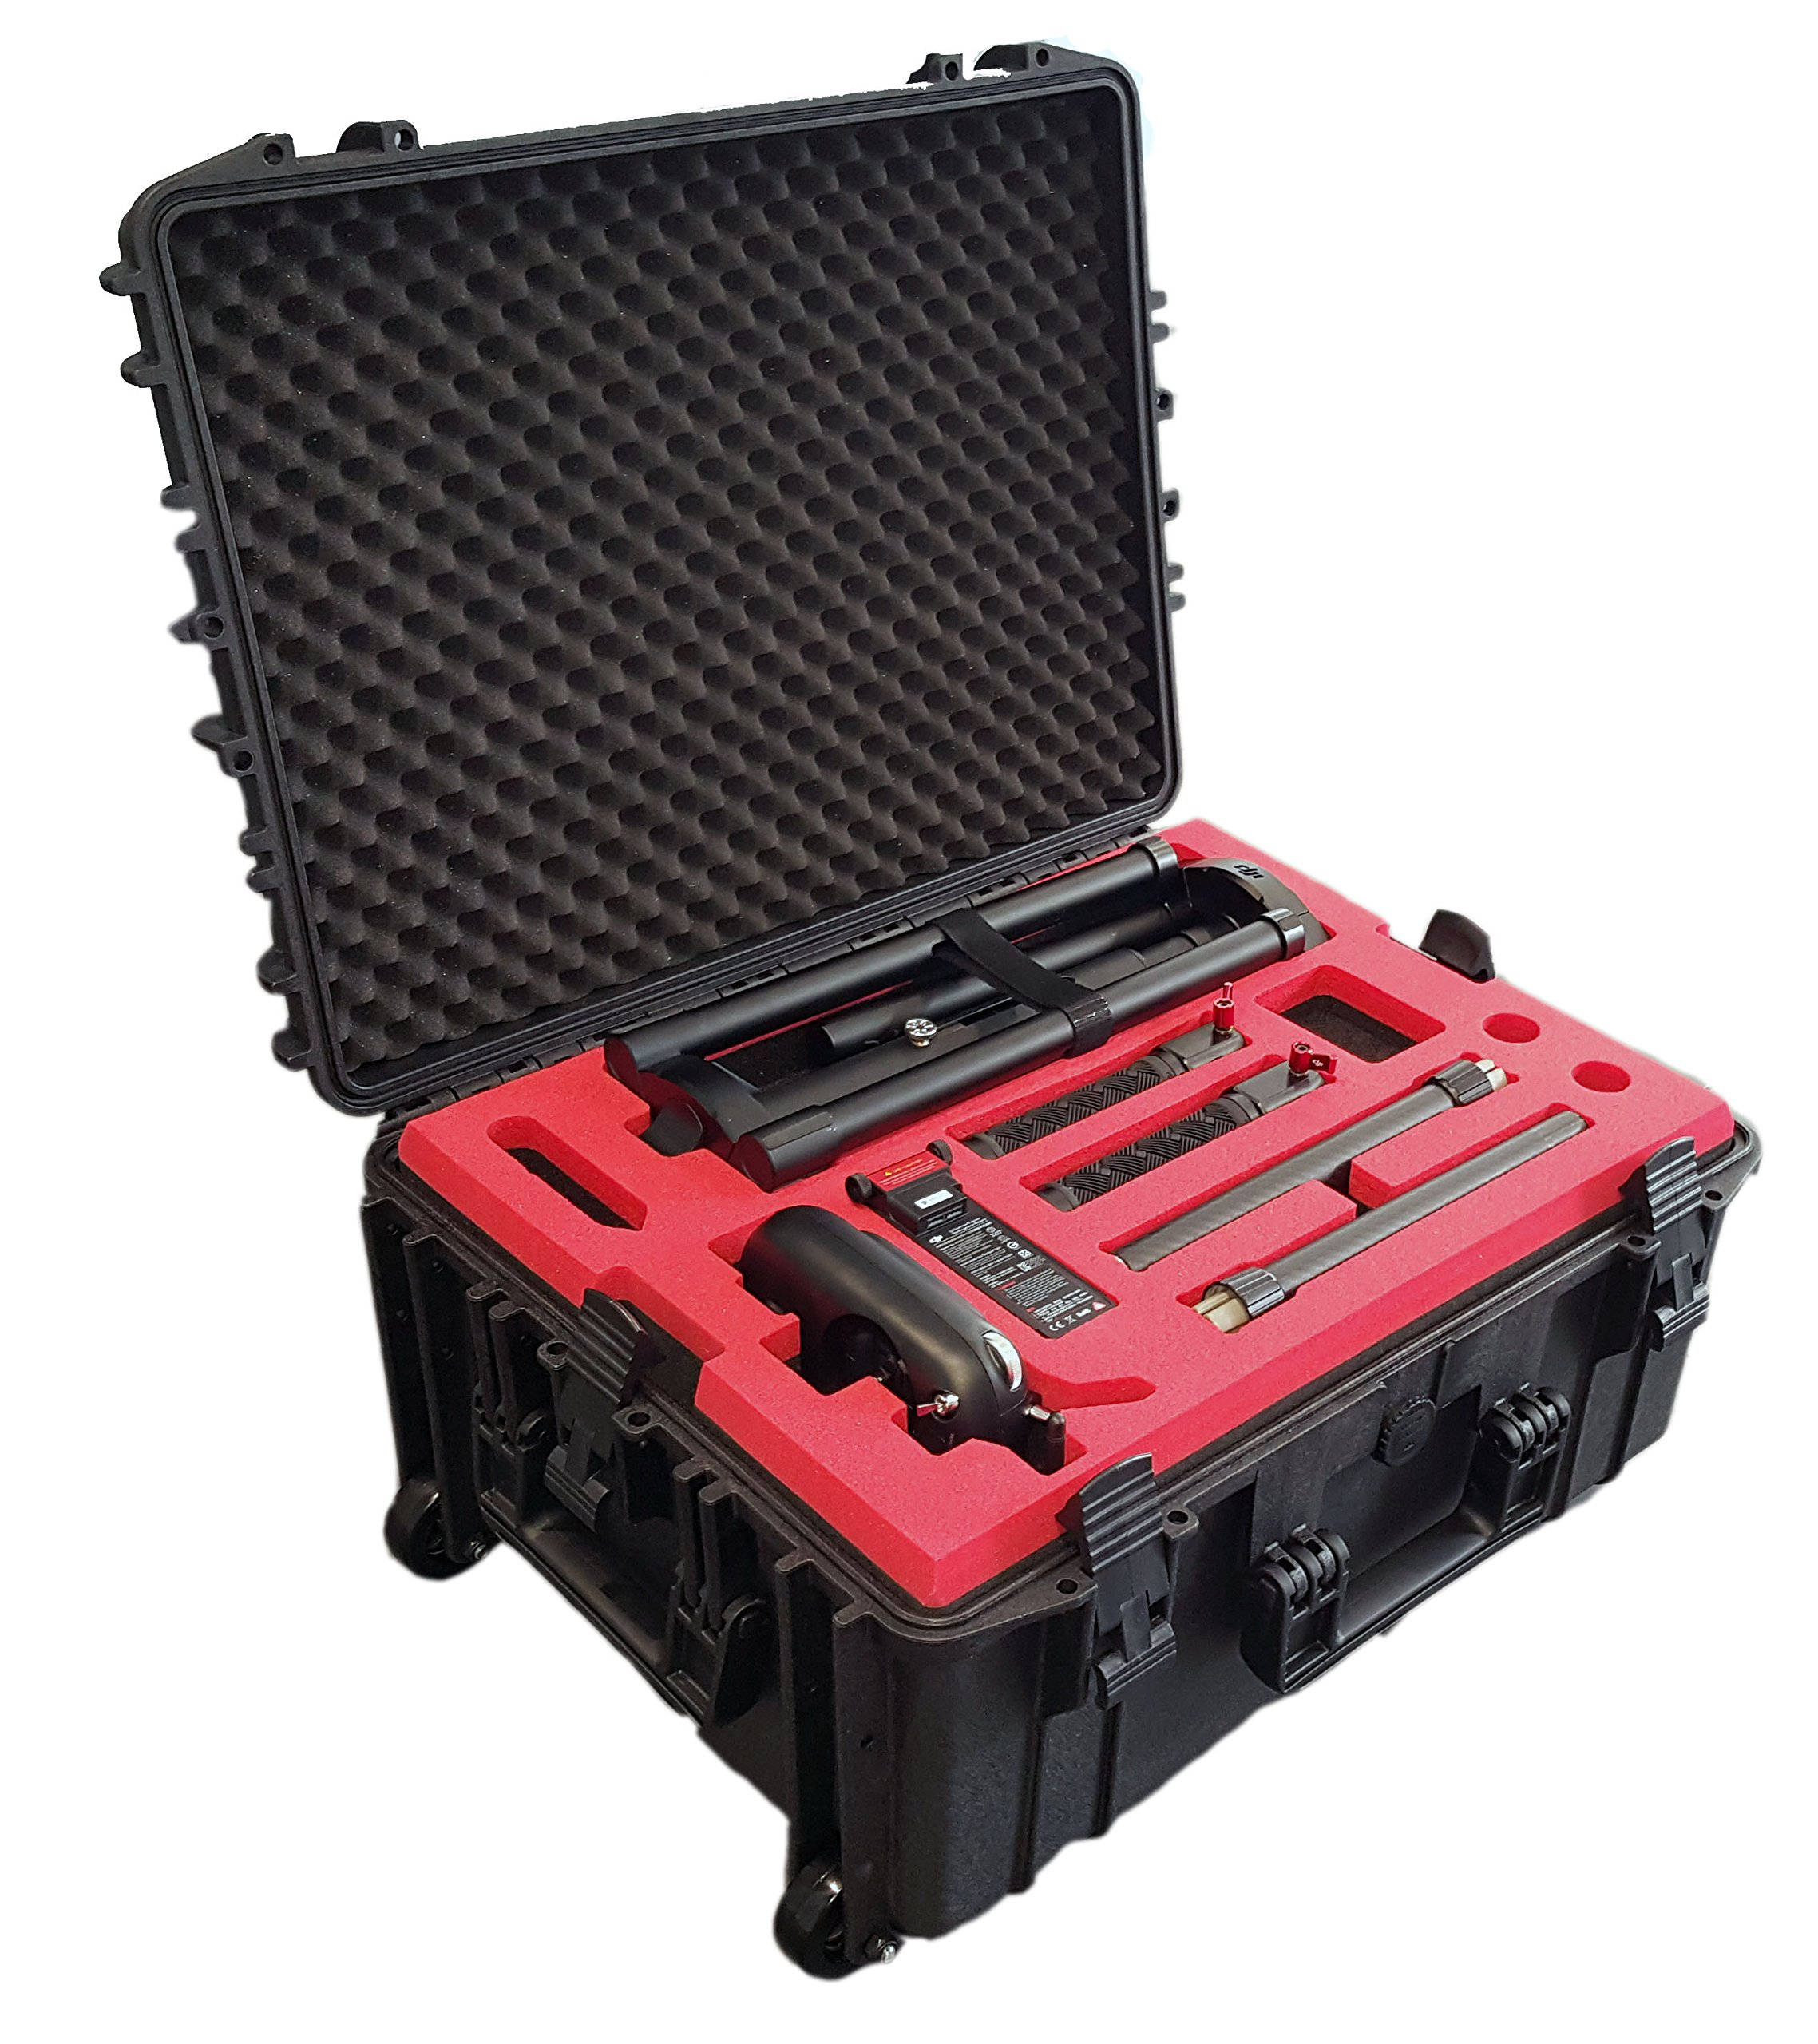 Professionell Trolley/Wheeled Carrying case Precisely fits for DJI Ronin MX with a lot of Space for Accessories on 3 Levels by mc-cases